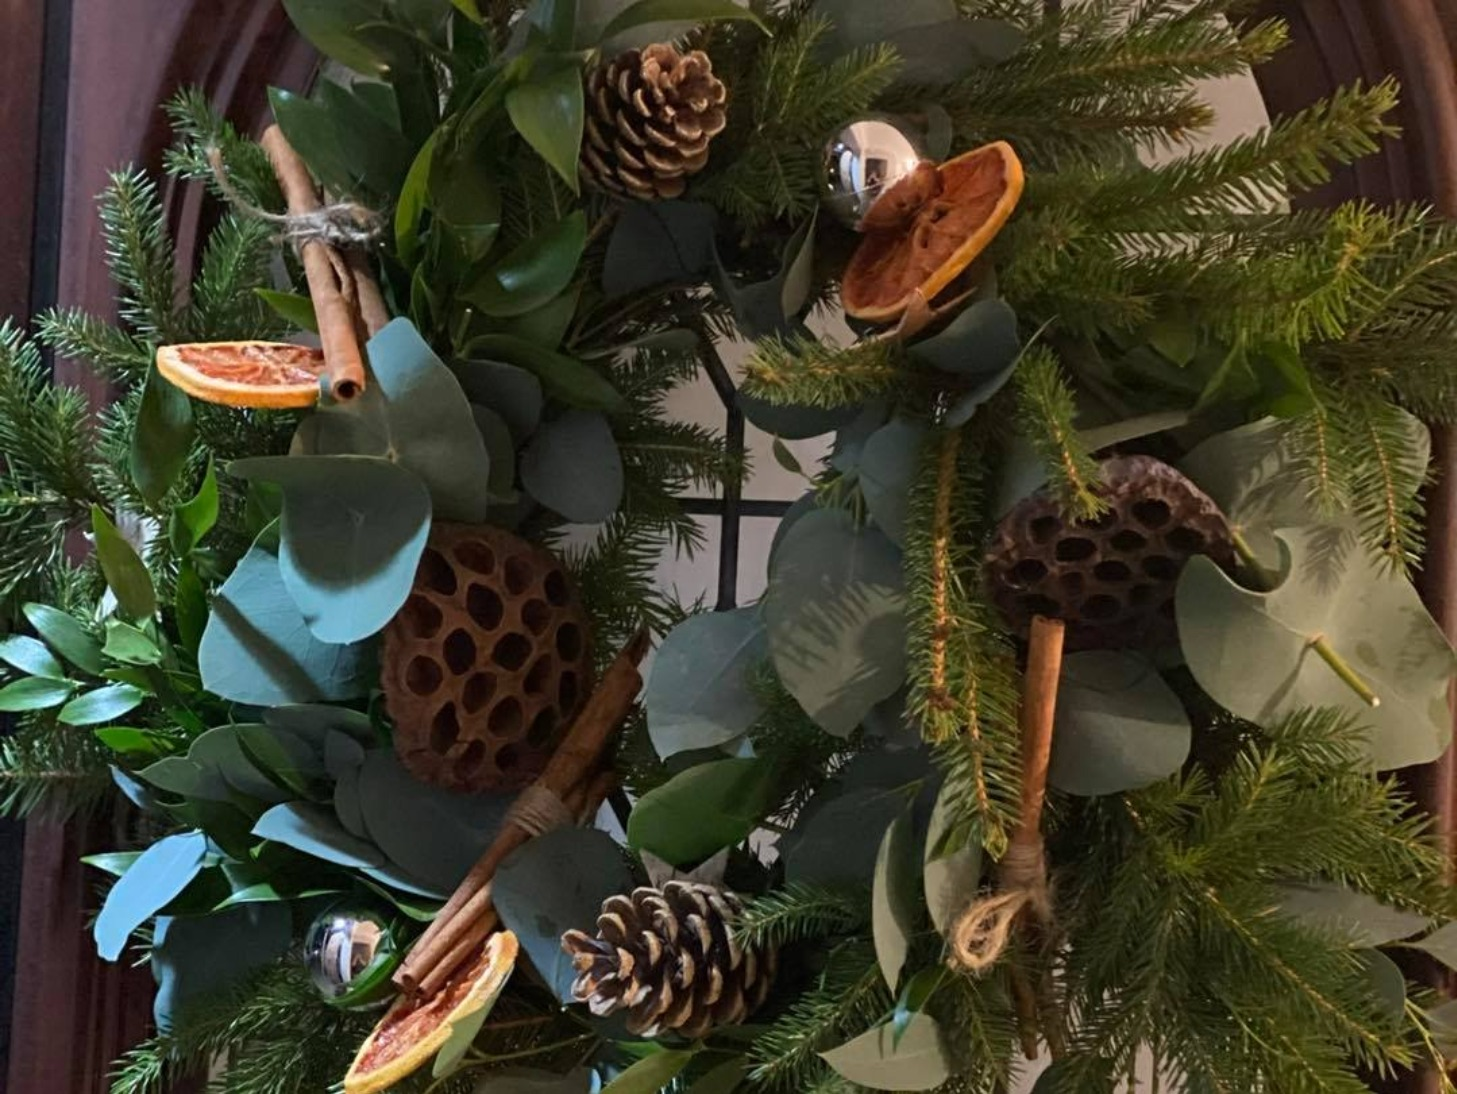 Festive Afternoon Tea and Wreath Making (Monday 13th December Workshop Room 2: 10am-1pm) DEPOSIT